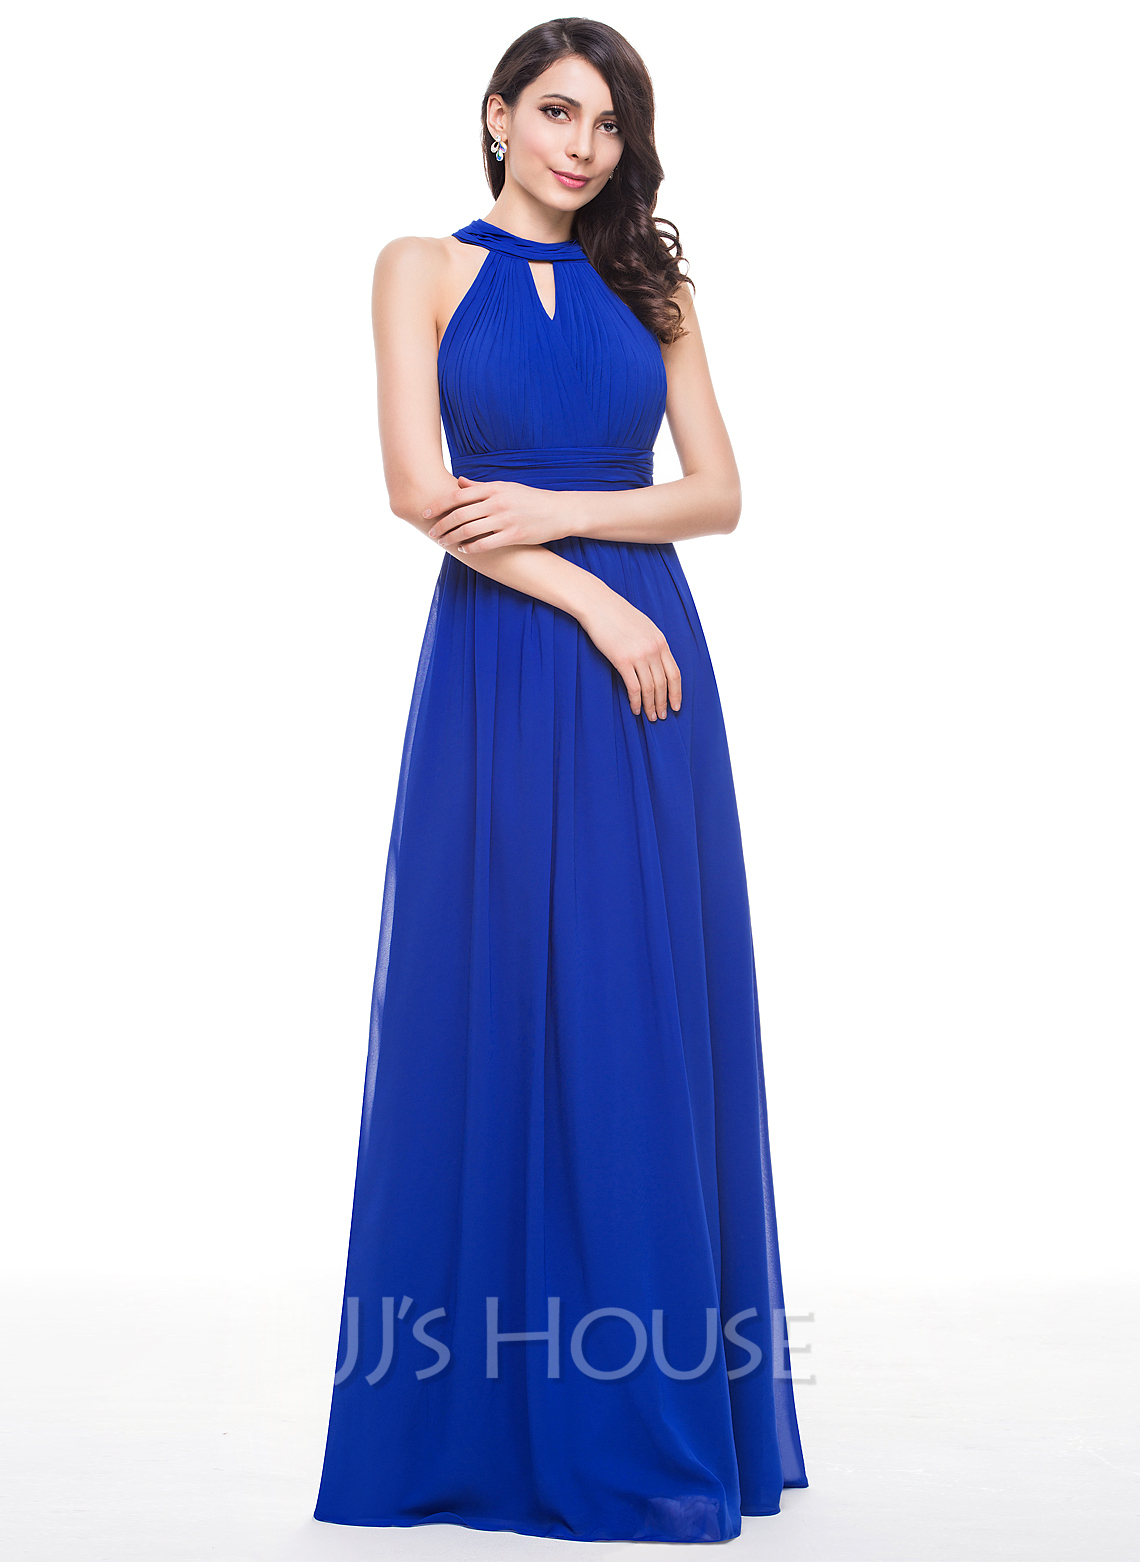 A Line Princess Scoop Neck Floor Length Chiffon Bridesmaid Dress With Ruffle g jjs house wedding dresses Bridesmaid Dresses Loading zoom